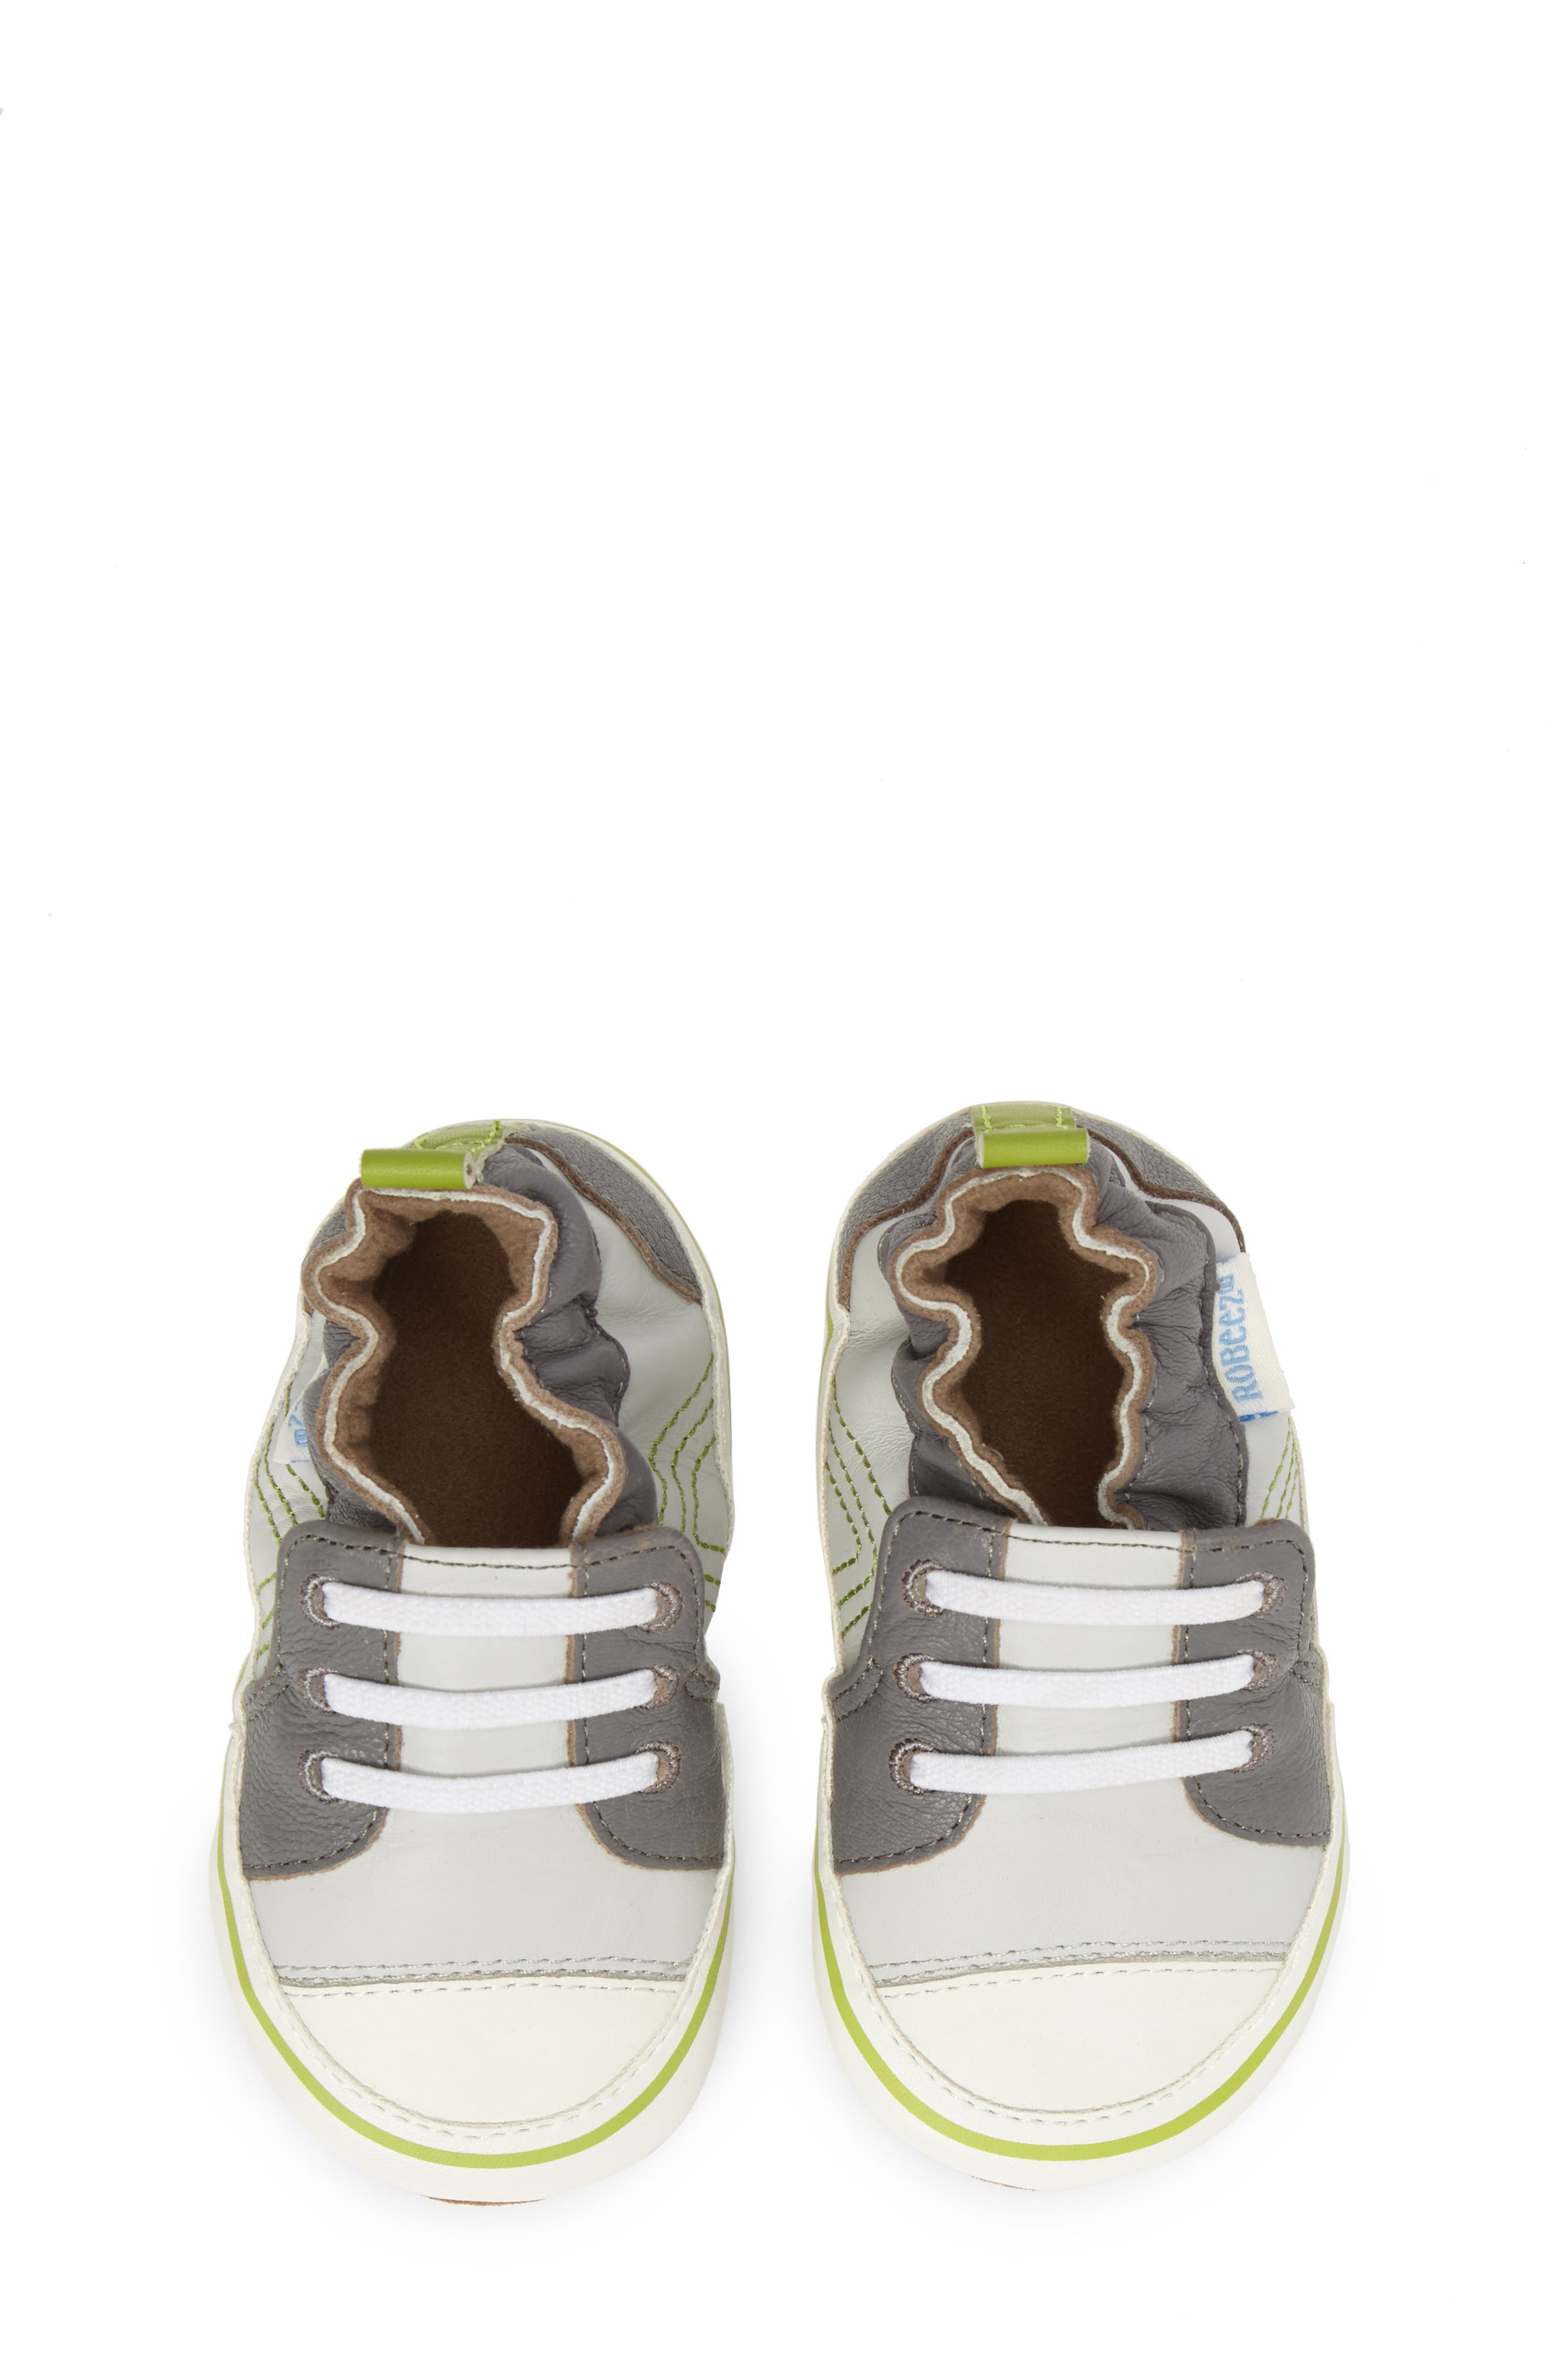 Trendy Trainer Sneaker Crib Shoe,                             Alternate thumbnail 5, color,                             Grey Leather